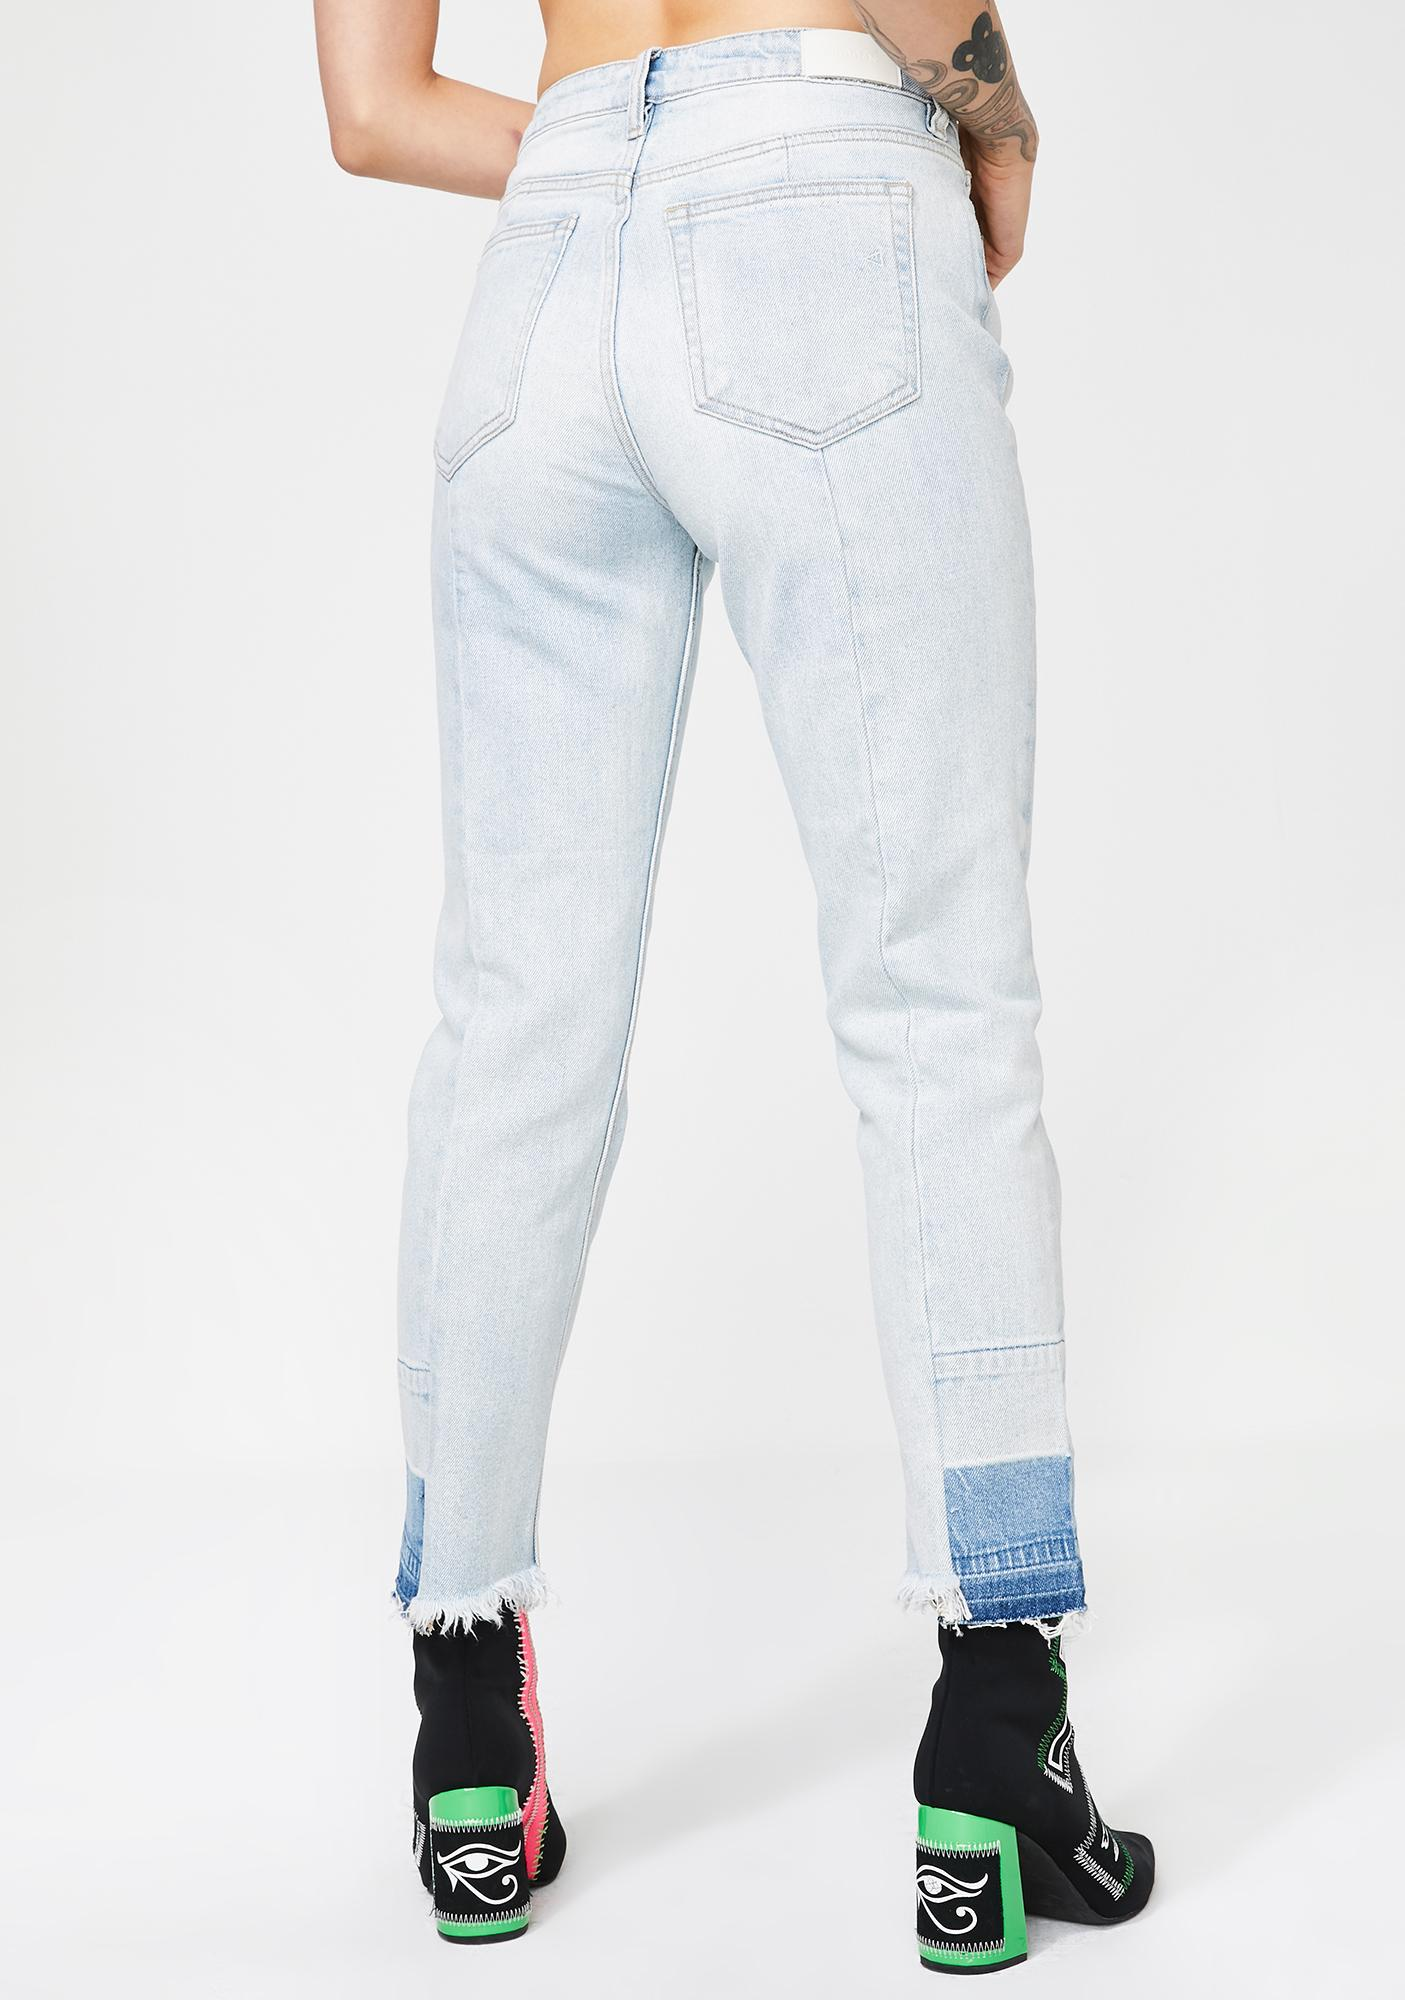 Hidden Denim Super Light Wash Straight Crop Jeans